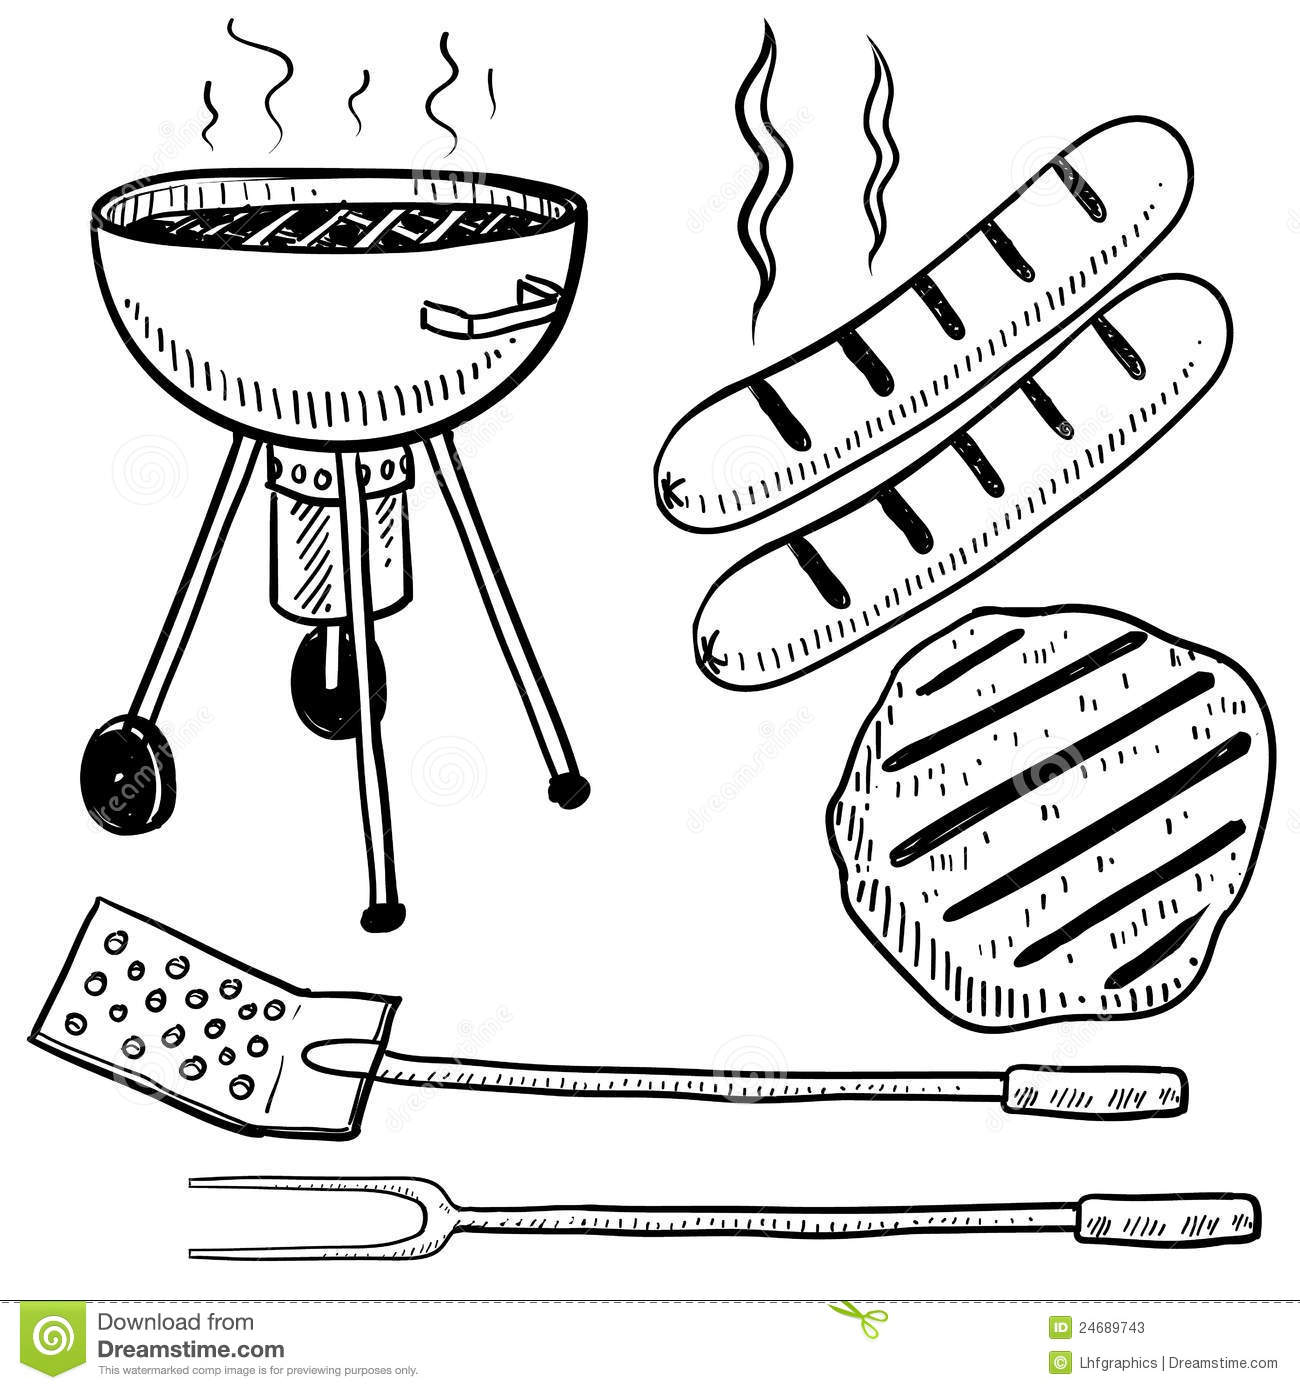 Hipster Backyard Bbq : Backyard Barbecue Equipment Sketch Stock Photos  Image 24689743